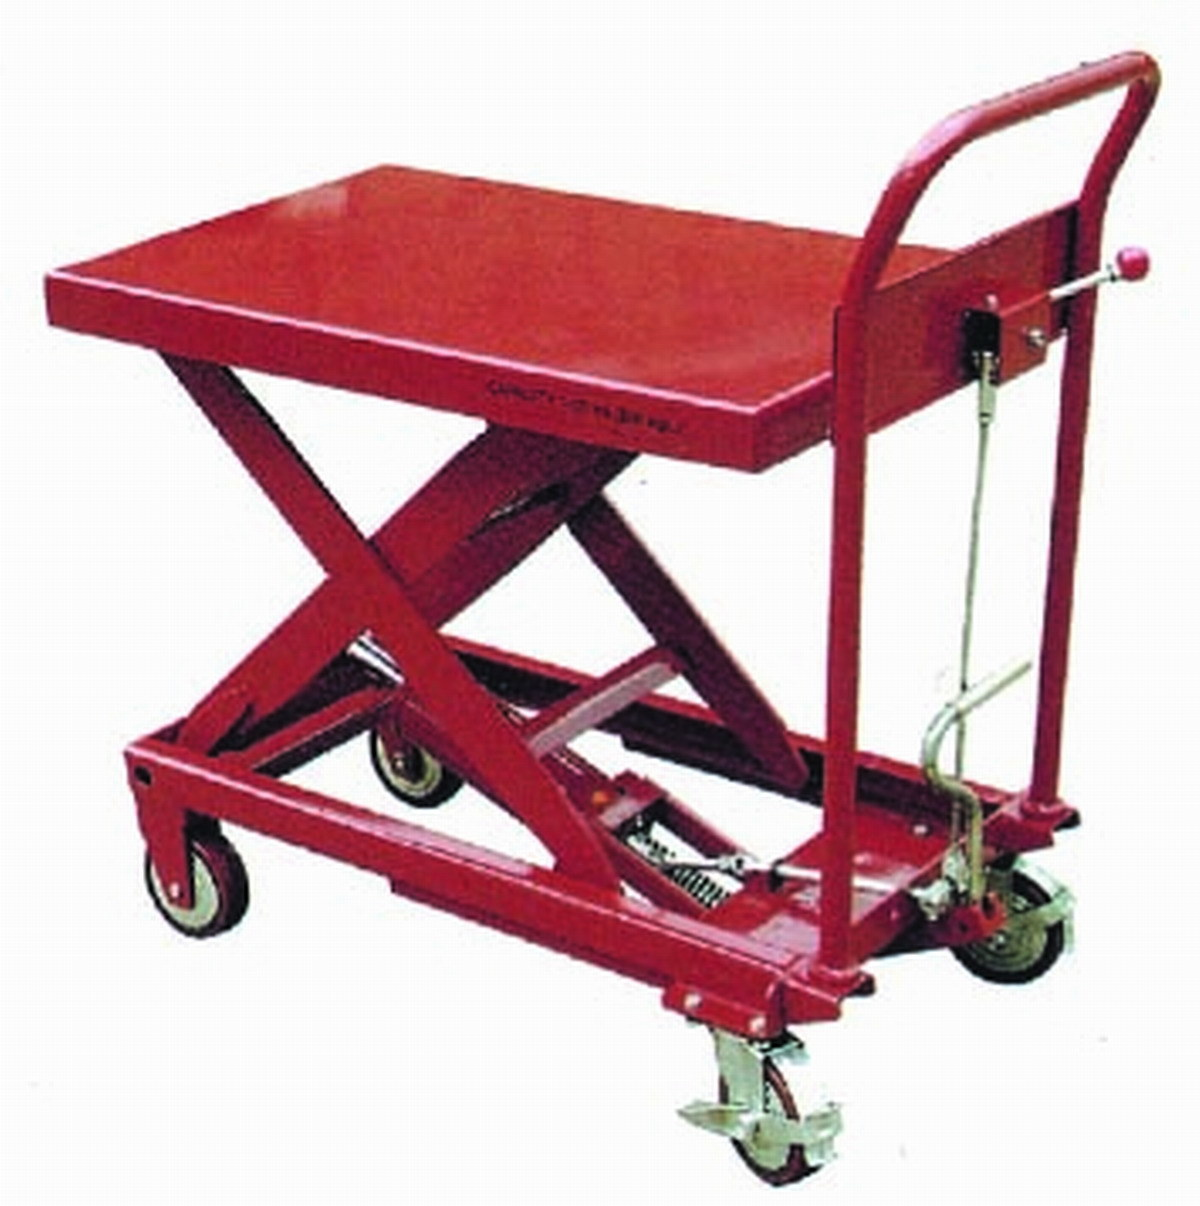 Table With Folding Sides picture on China CYT A Hydraulic Scissor Lift Tables with Table With Folding Sides, Folding Table 265ae223752664972ef45d2ab924c767